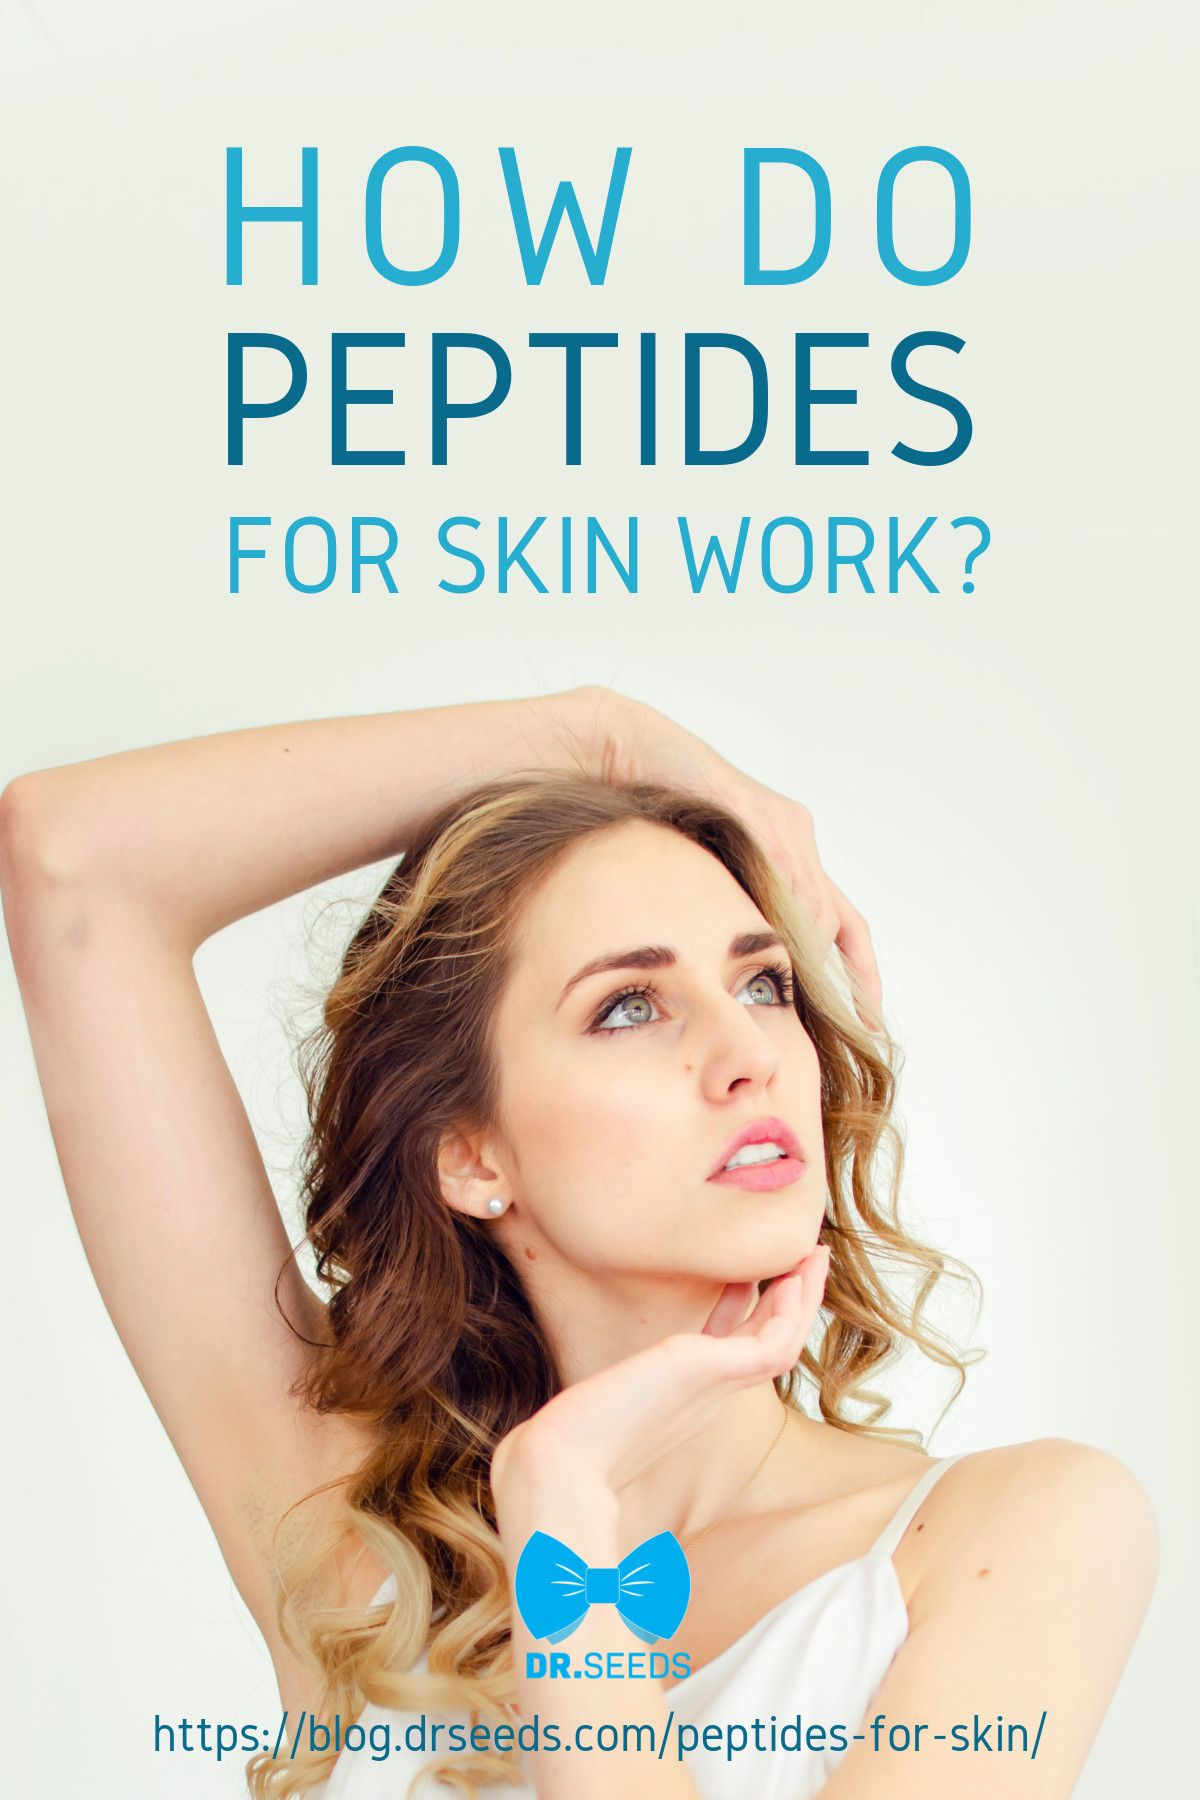 The Benefits Of Peptides In 2020 Peptides Skin Care Premature Wrinkles Skin Care Benefits